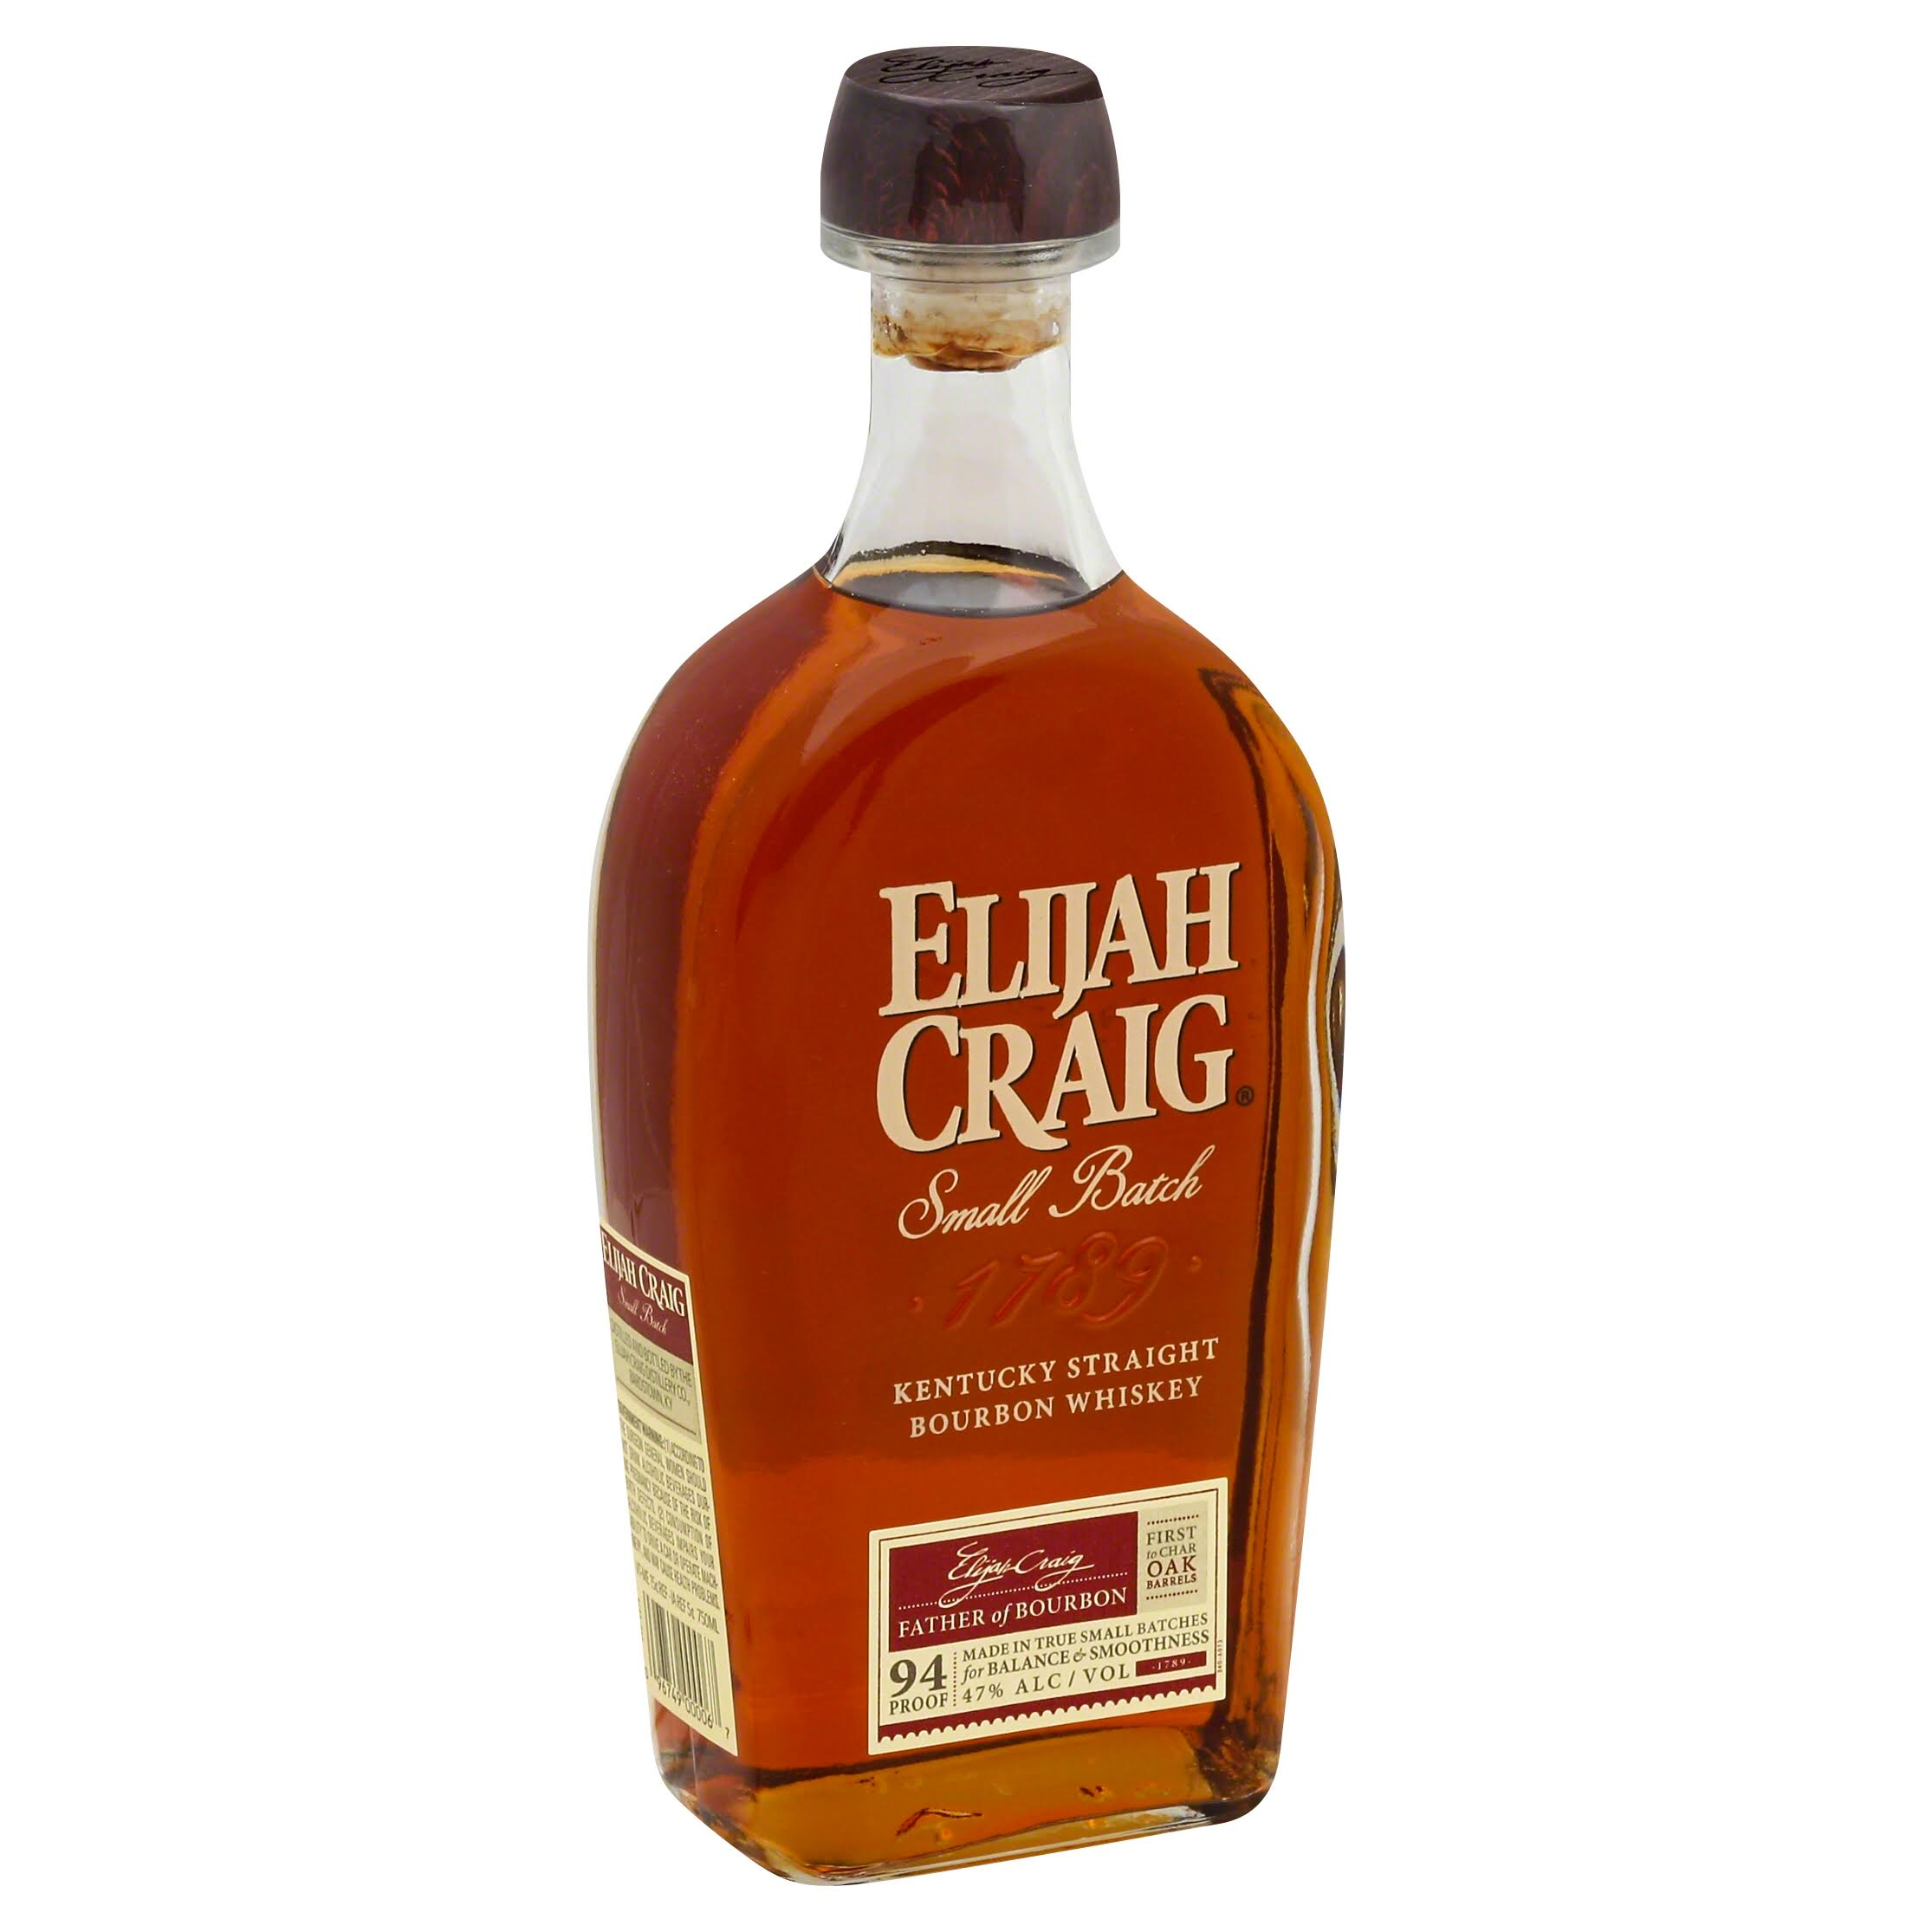 Elijah Craig 12 Year Old Small Batch Bourbon - 750 ml bottle